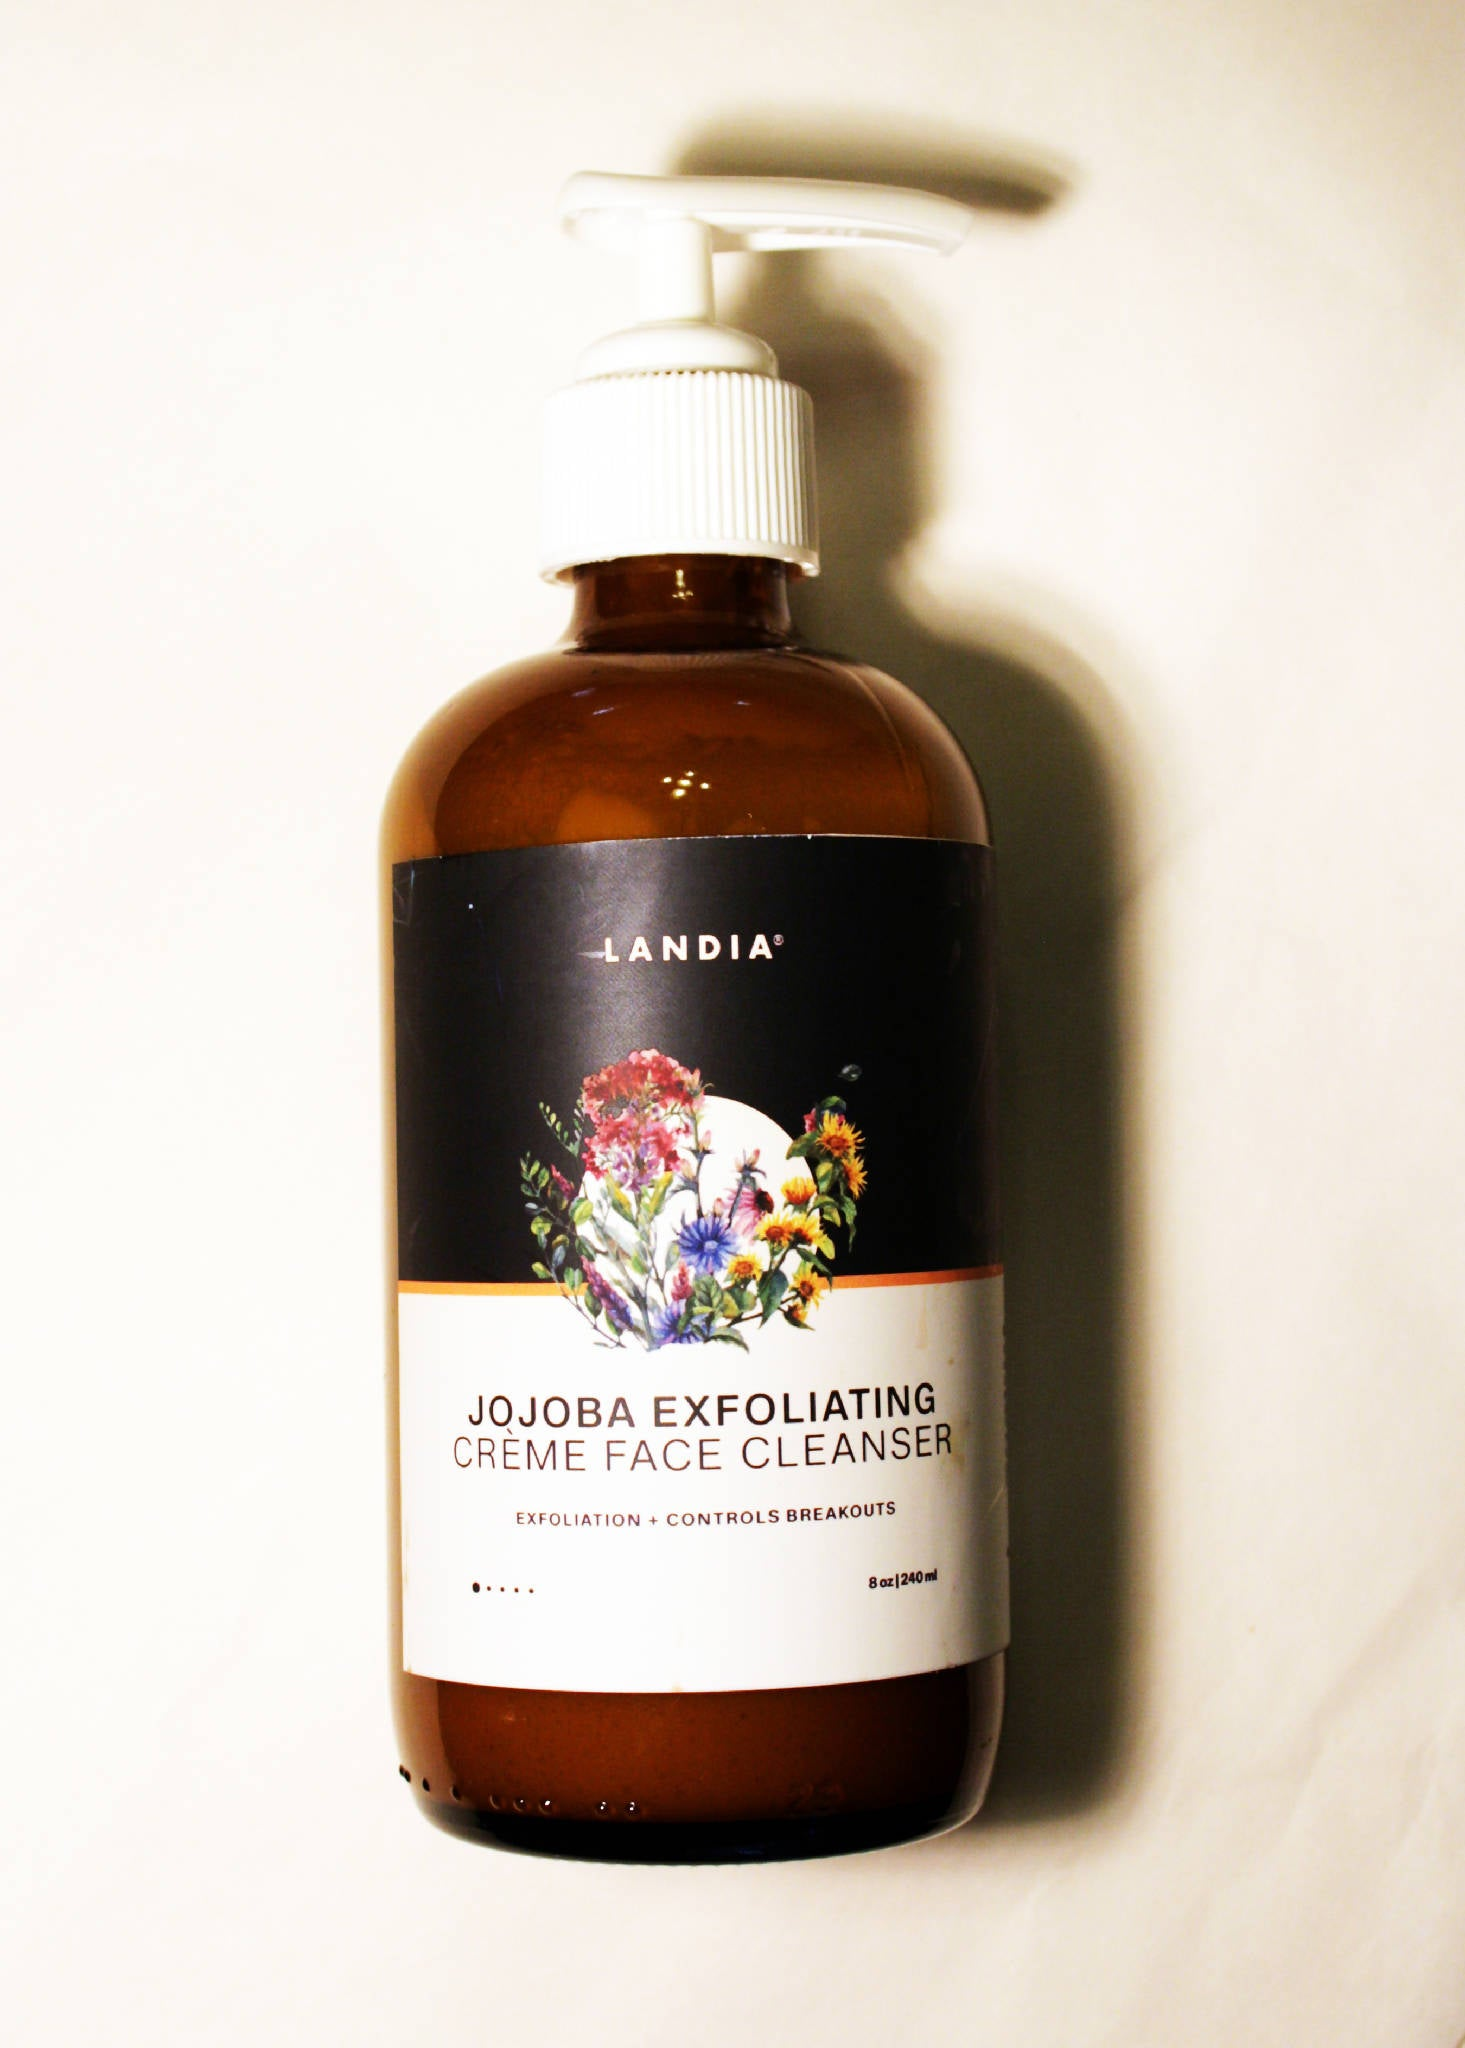 Jojoba Exfoliating Creme Face Cleanser